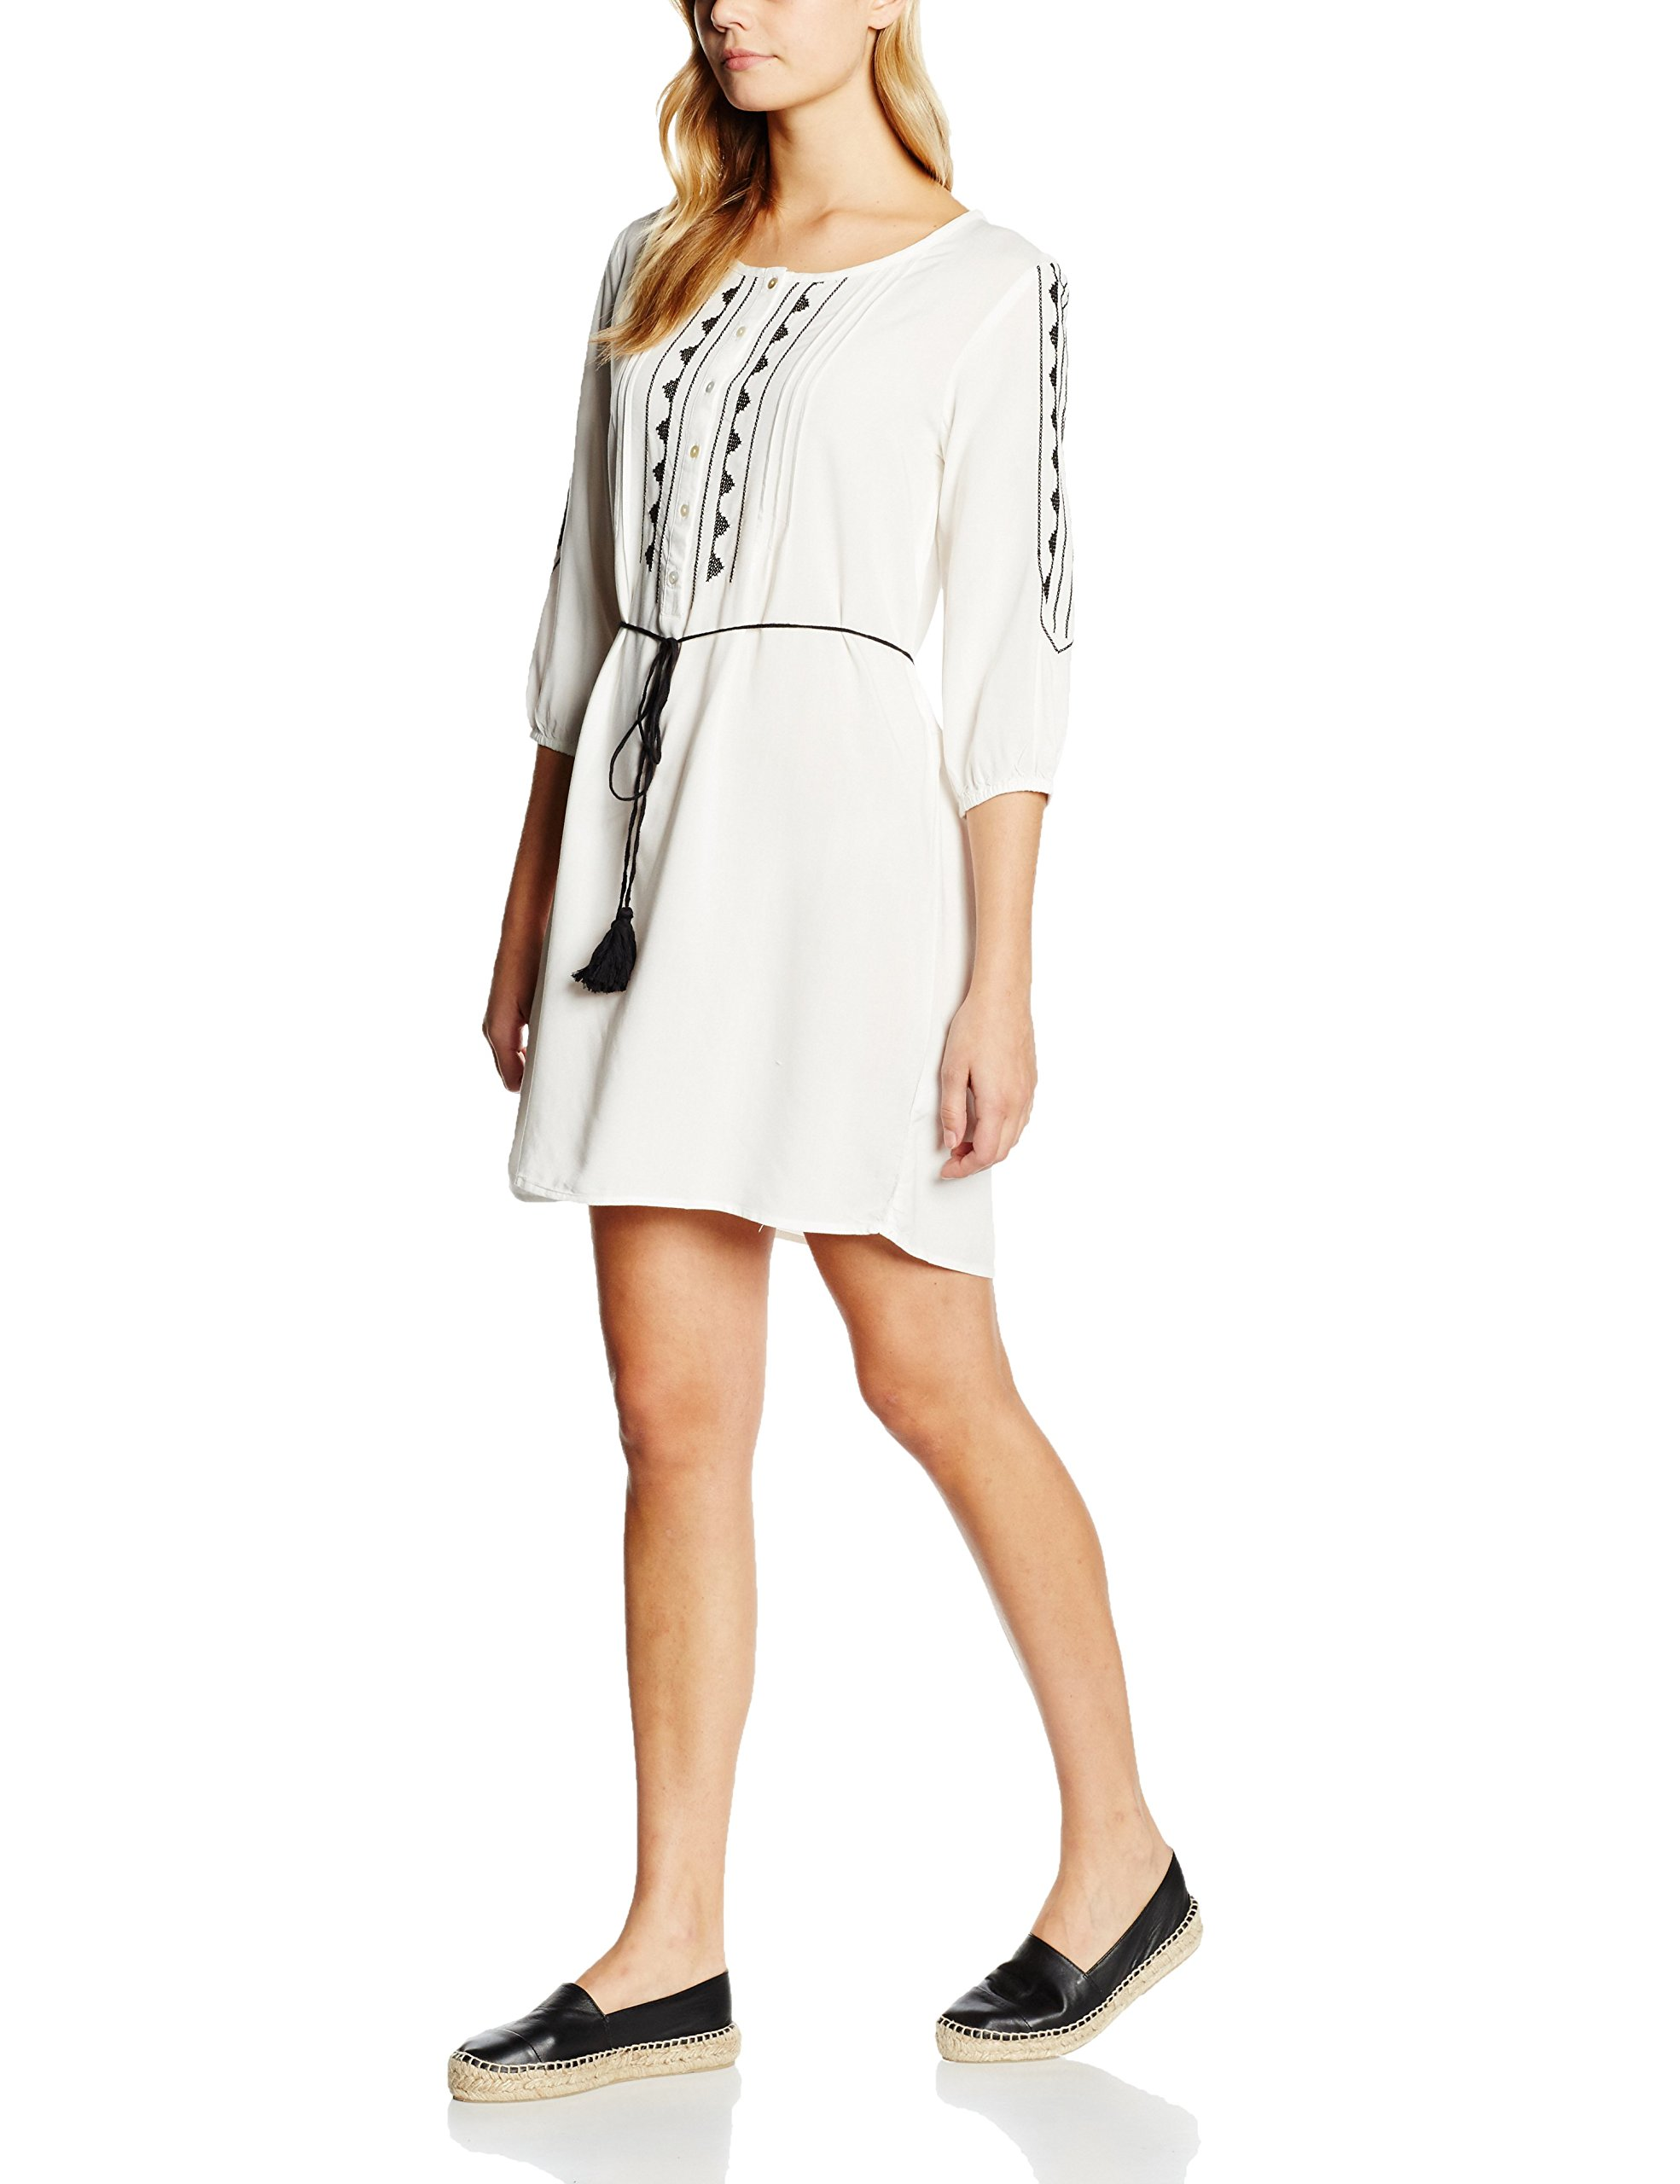 Tunic 8011544 young weißoff White B Femme Glady BlouseBlanc CrdexBo